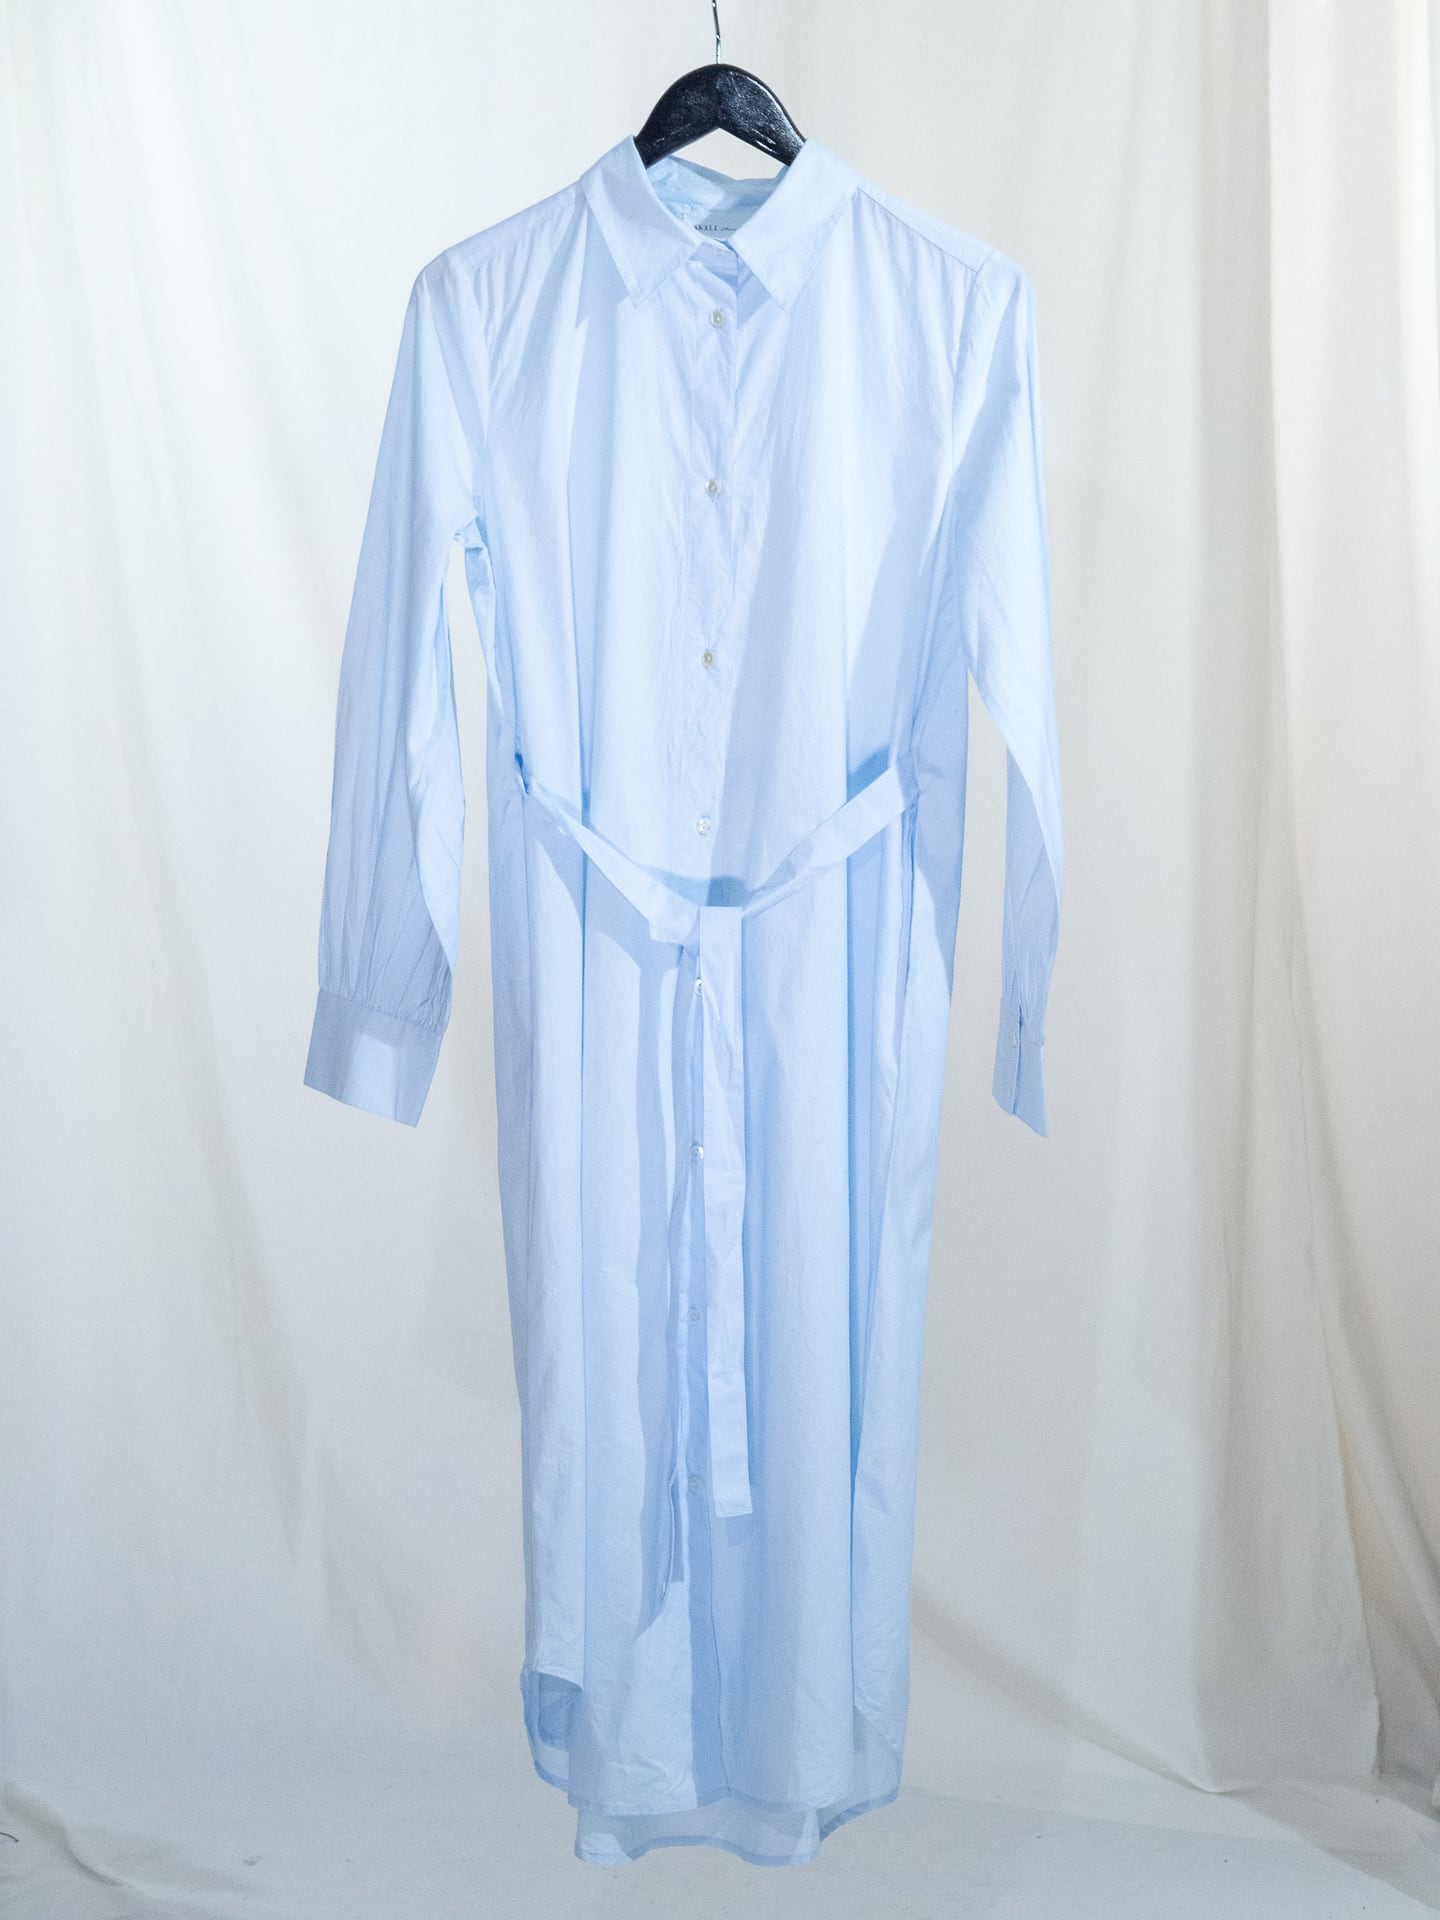 Rose shirtdress light blue